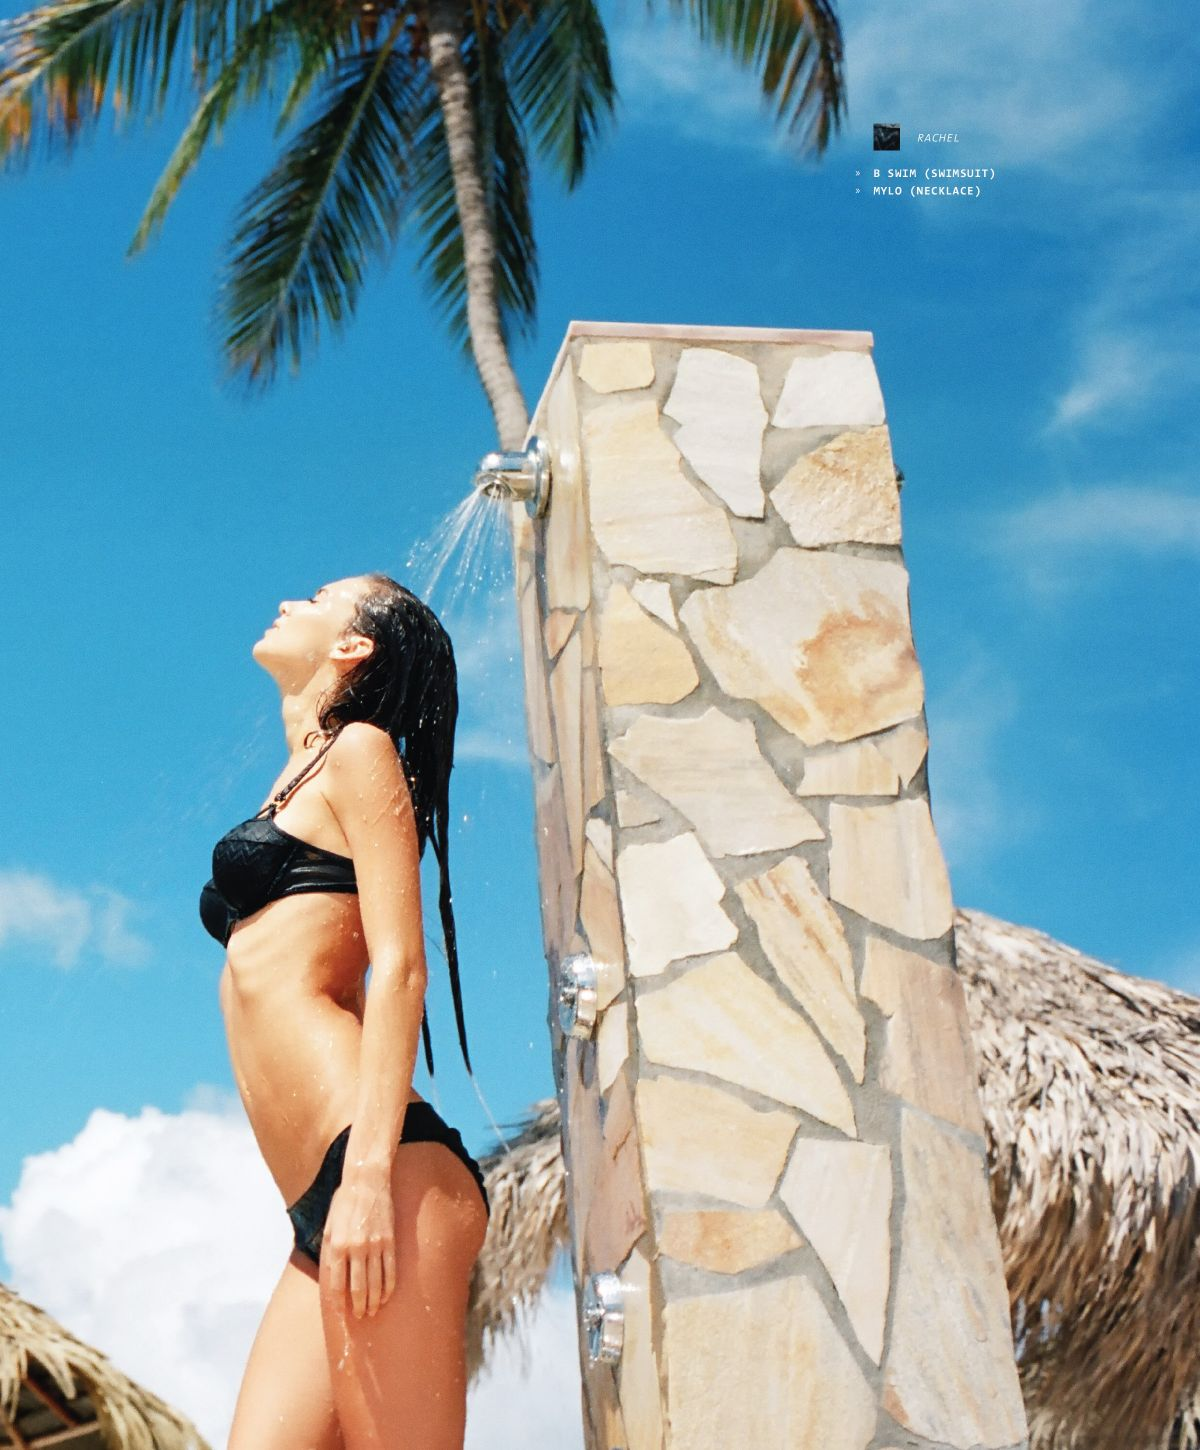 RACHEL THOMAS in Surf Magazine, 2014 Swimsuit Issue